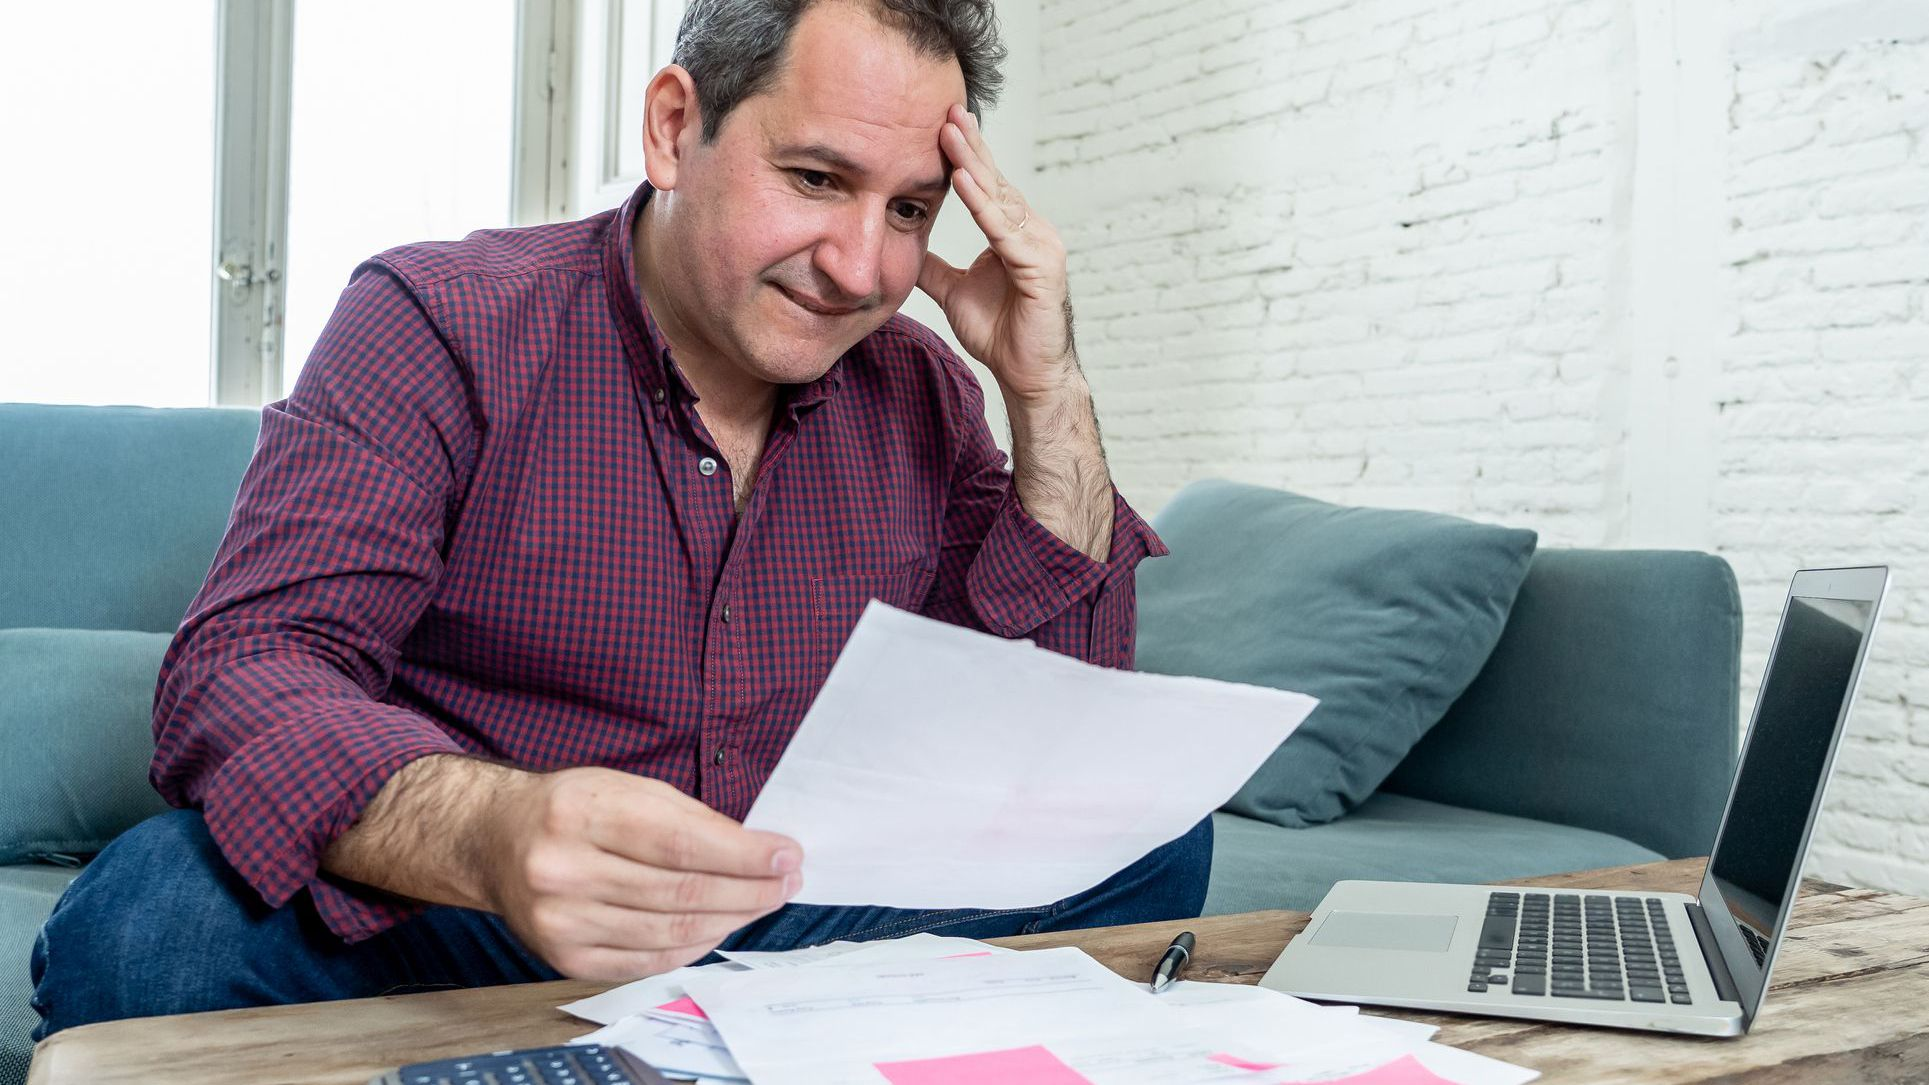 Bad Credit May Not Prevent Getting A Medical Loan